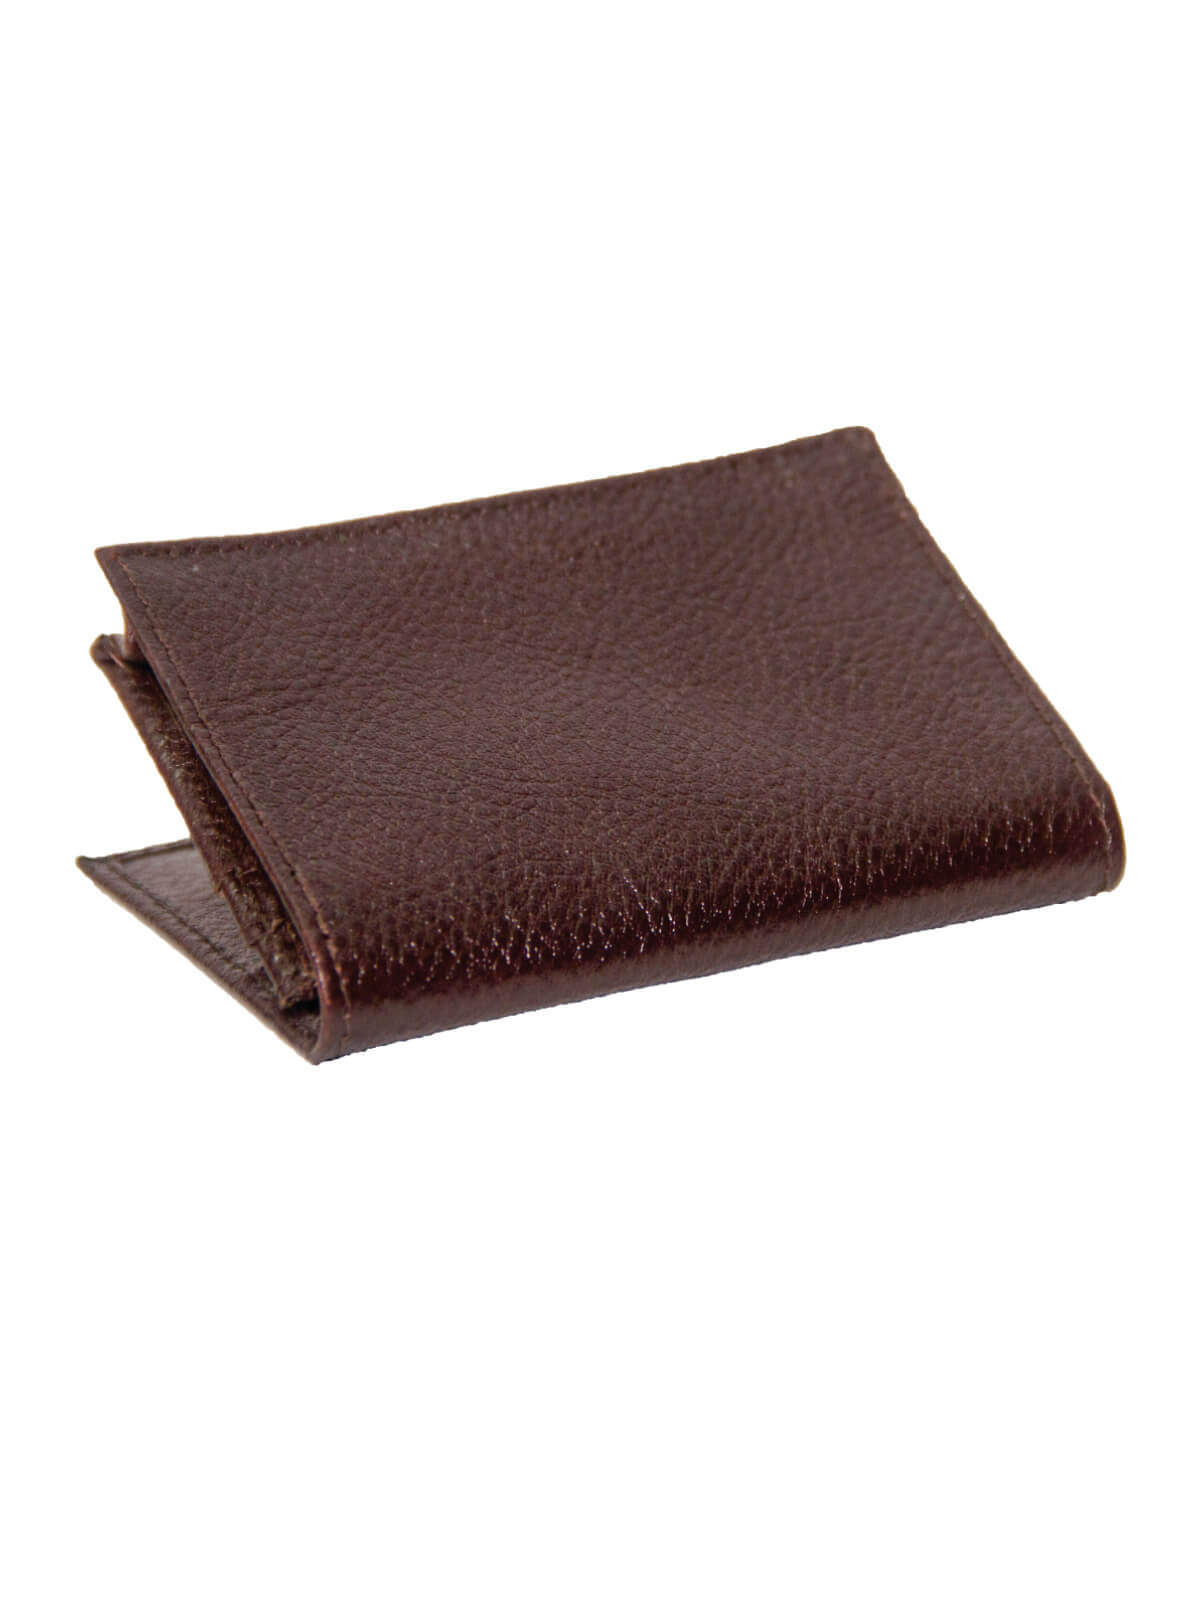 Brown Pod Leather Wallet/Card Holder